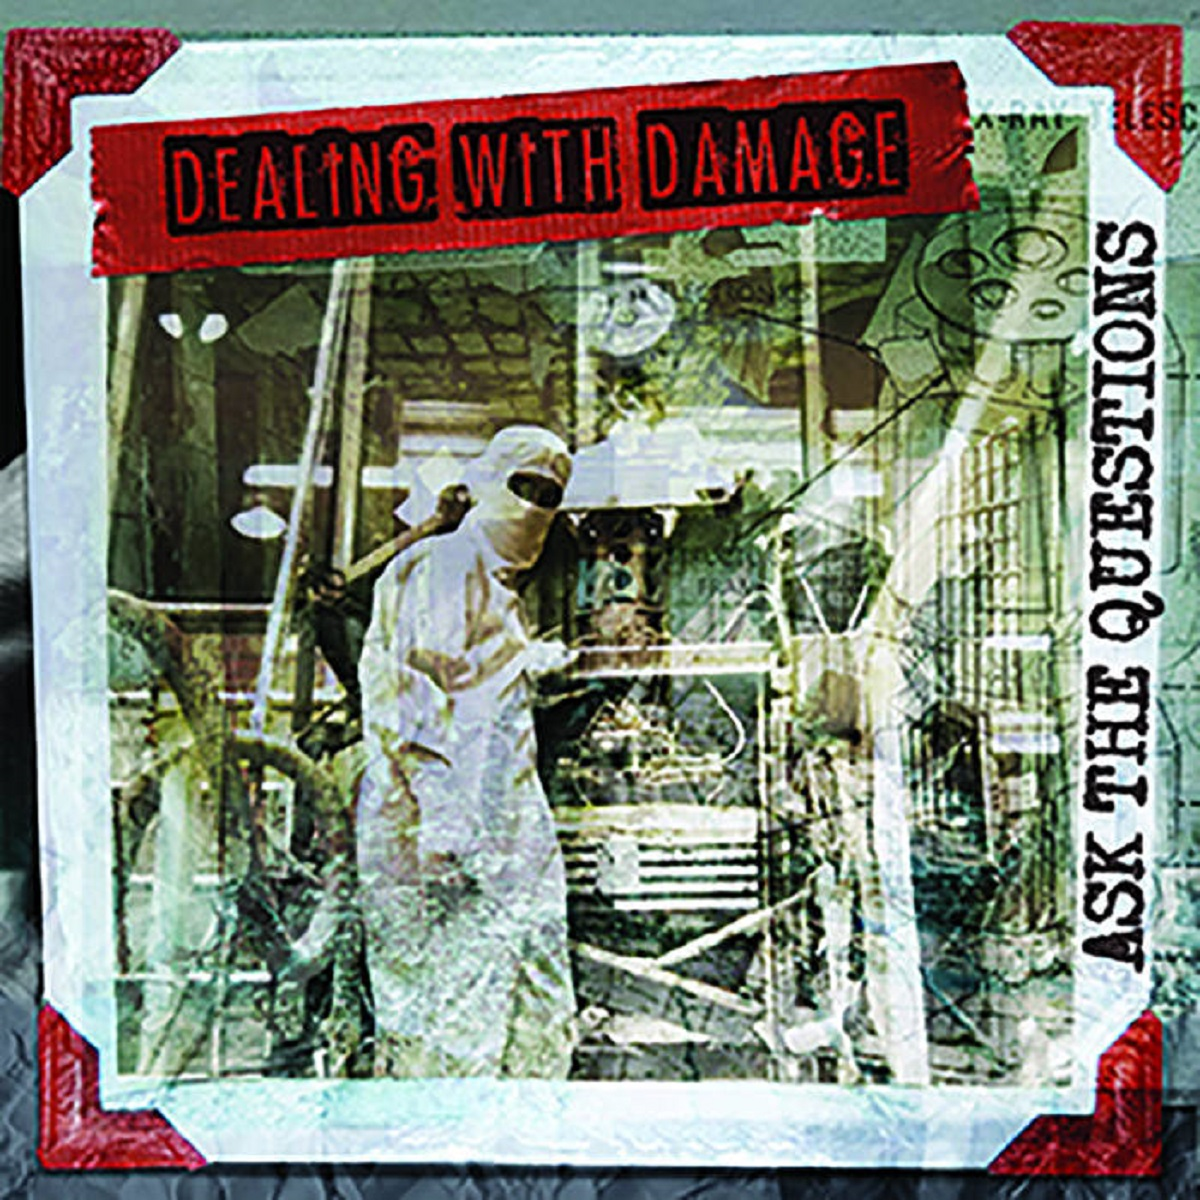 Review: Dealing With Damage – Ask The Questions